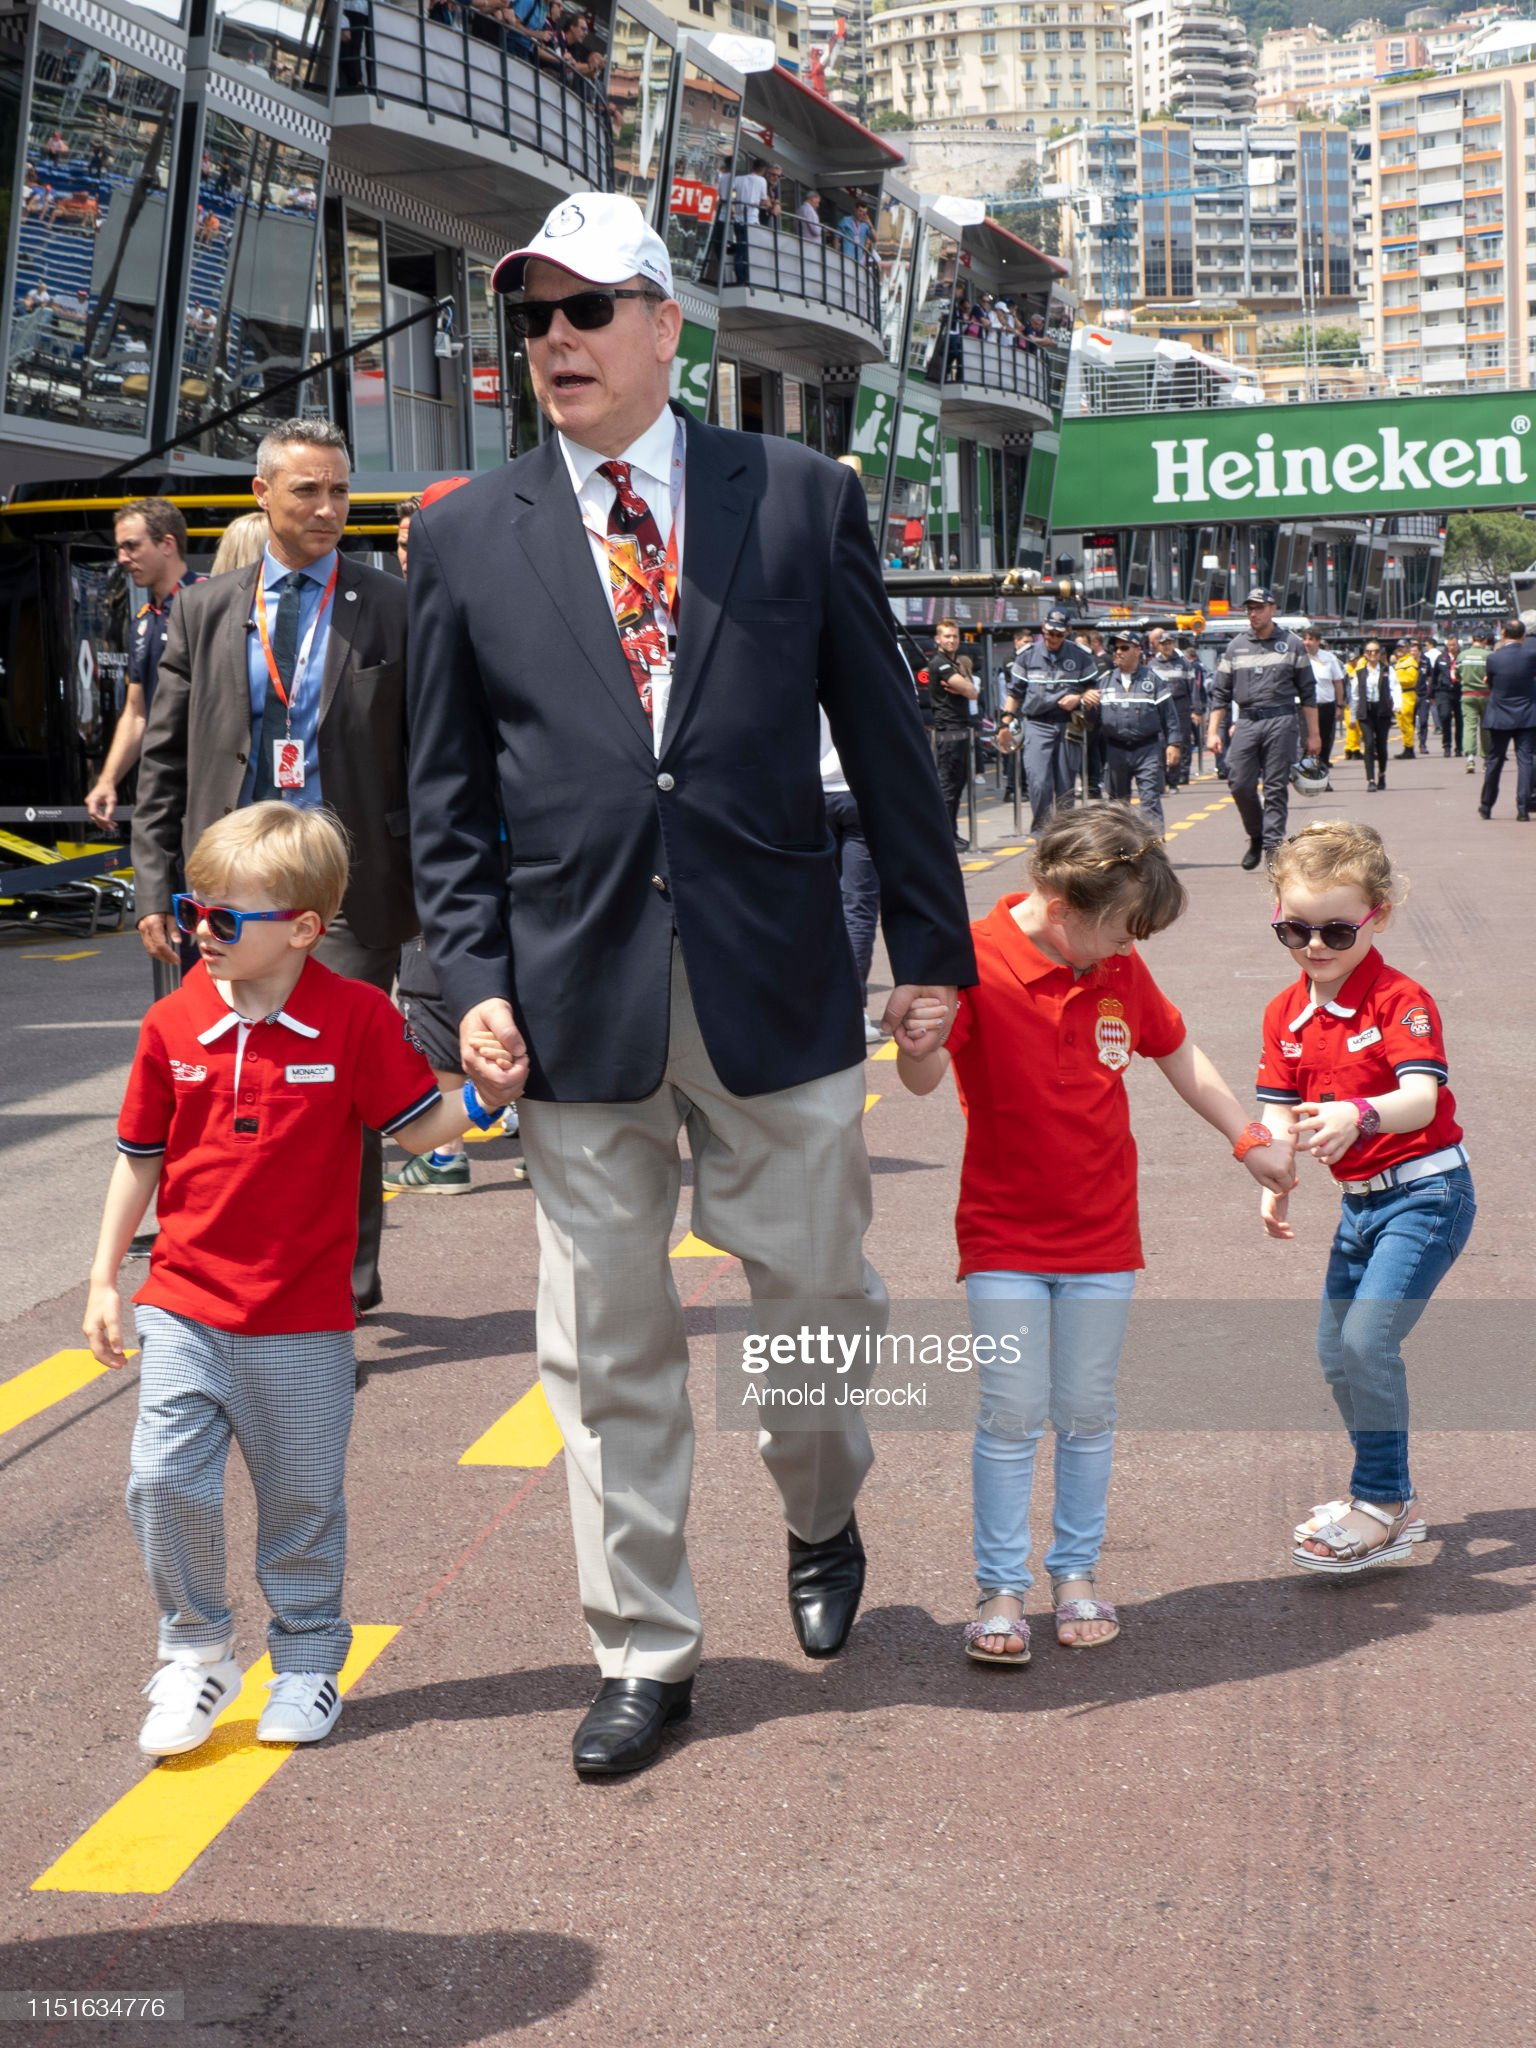 prince-jacques-prince-albert-ii-of-monaco-kaia-rose-wittstock-and-picture-id1151634776